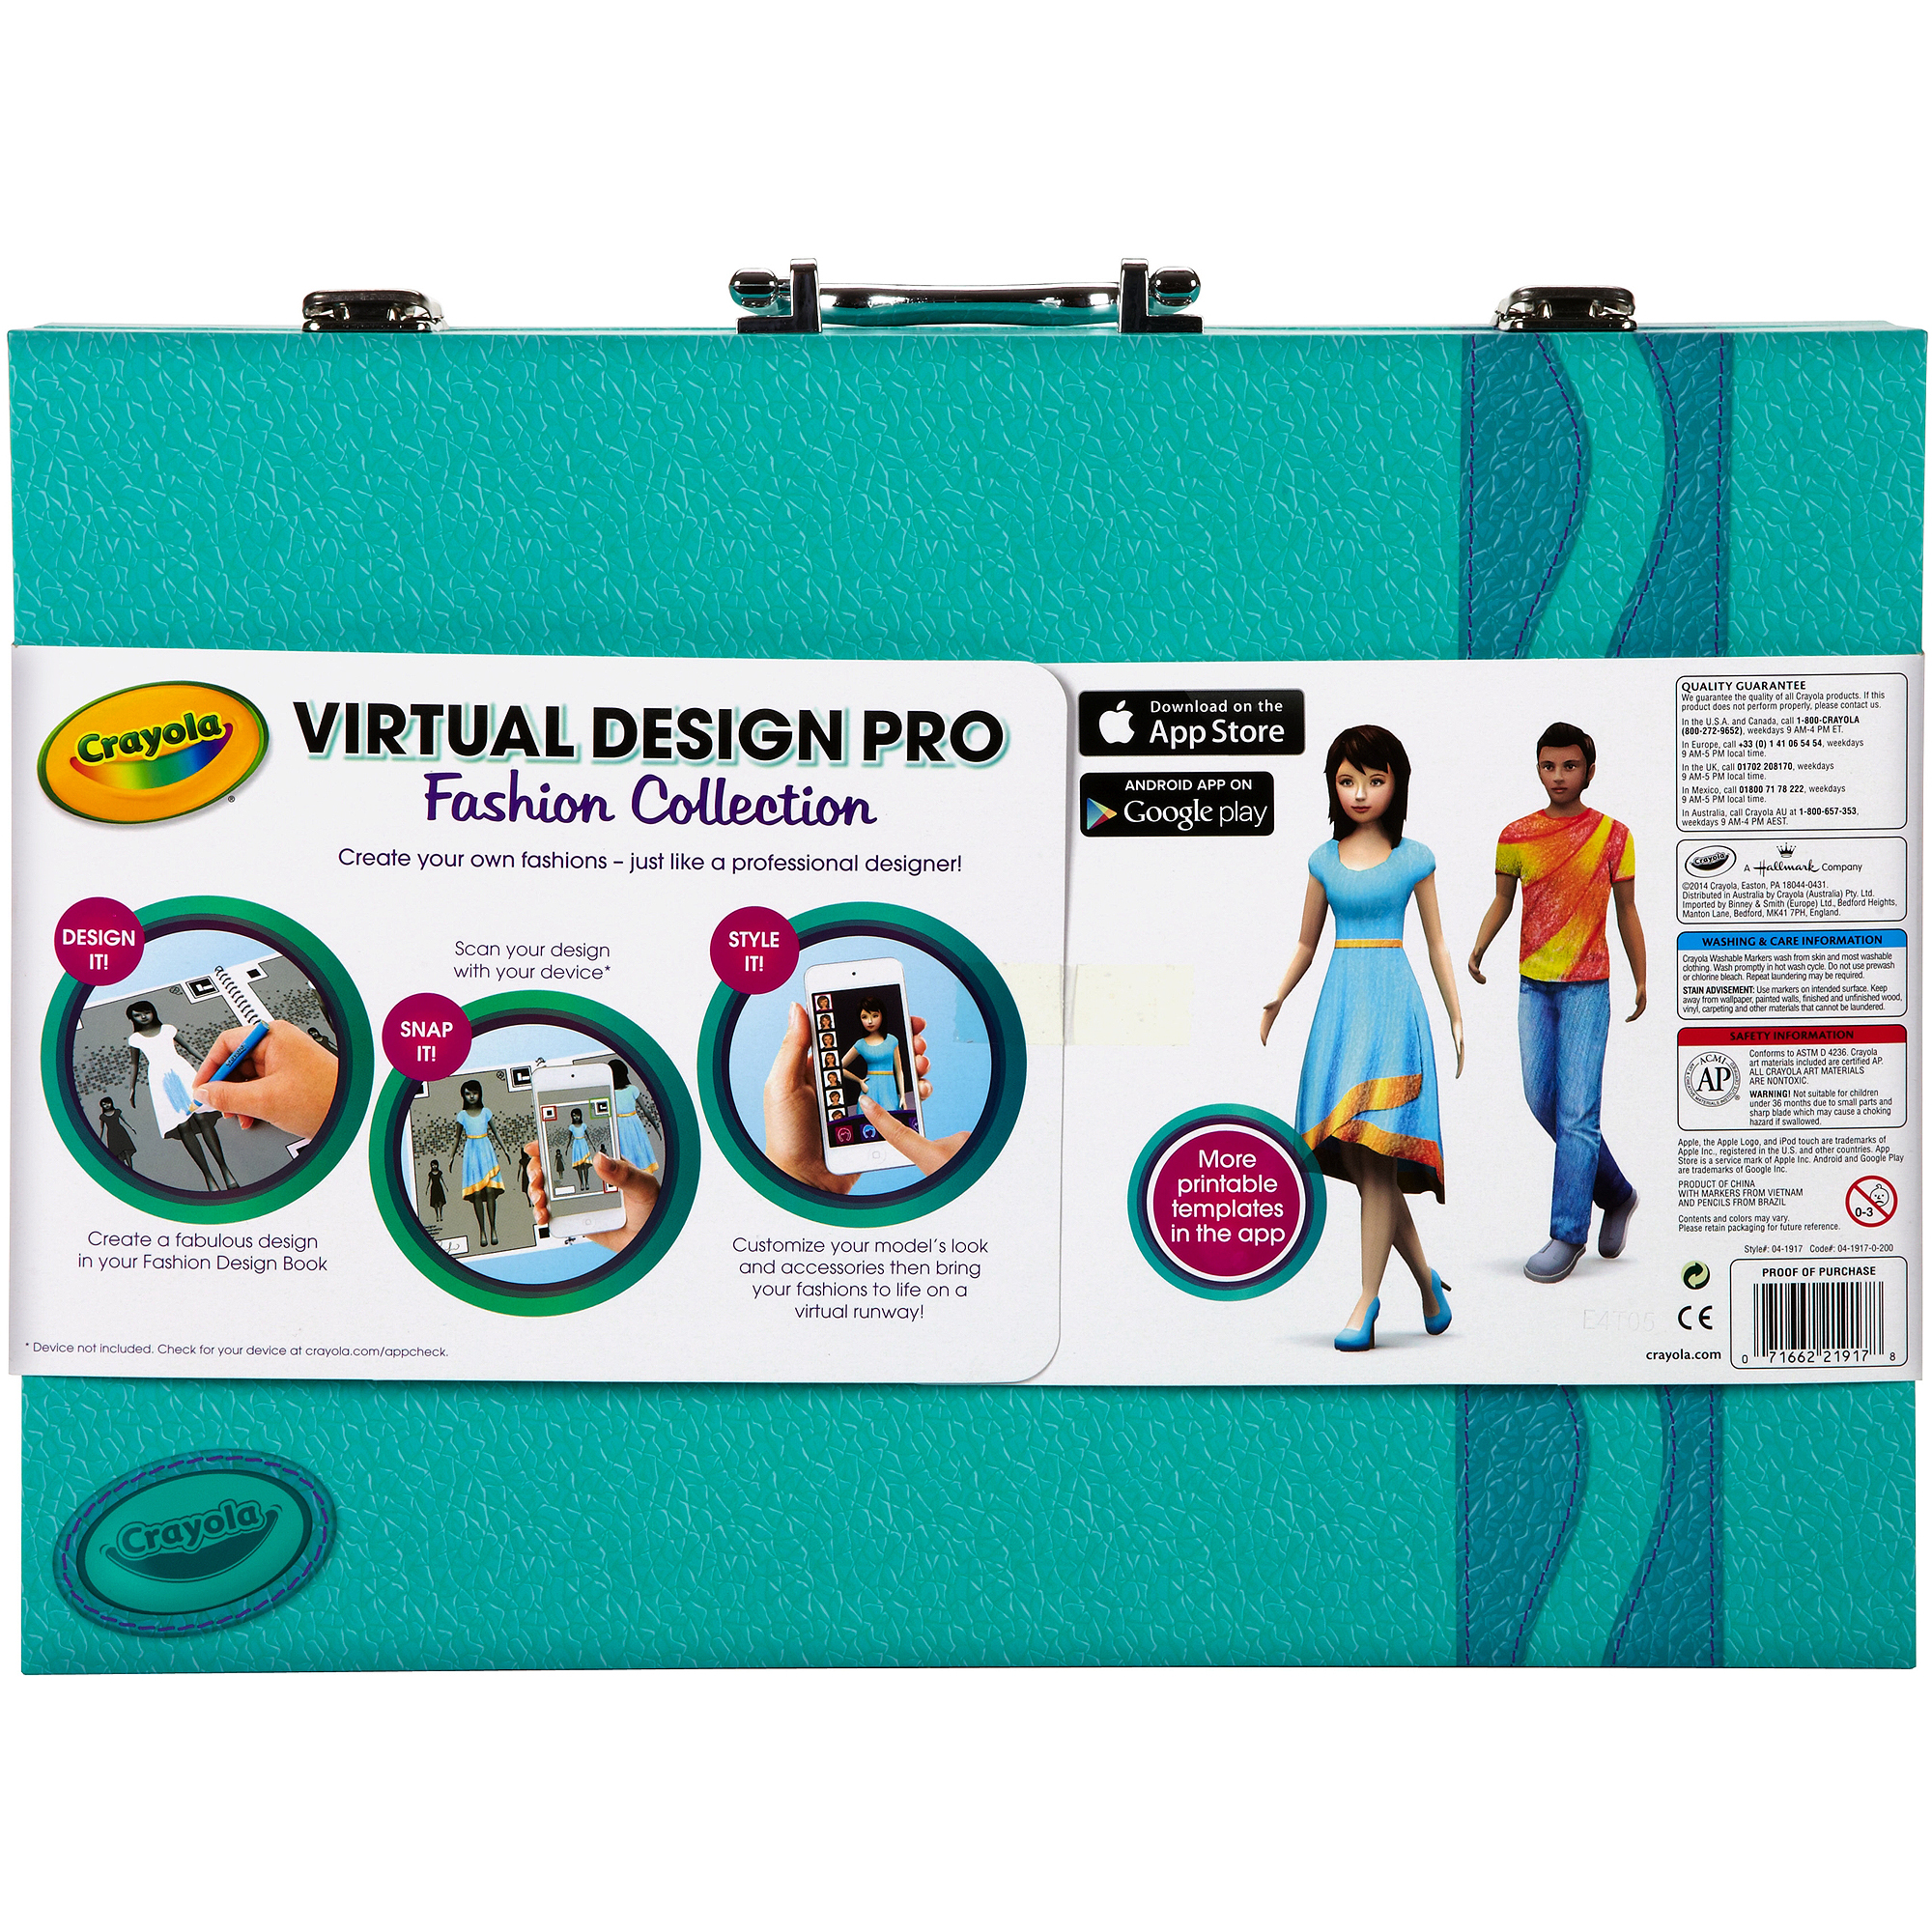 Crayola Virtual Design Pro Fashion Collection Walmart Com Walmart Com